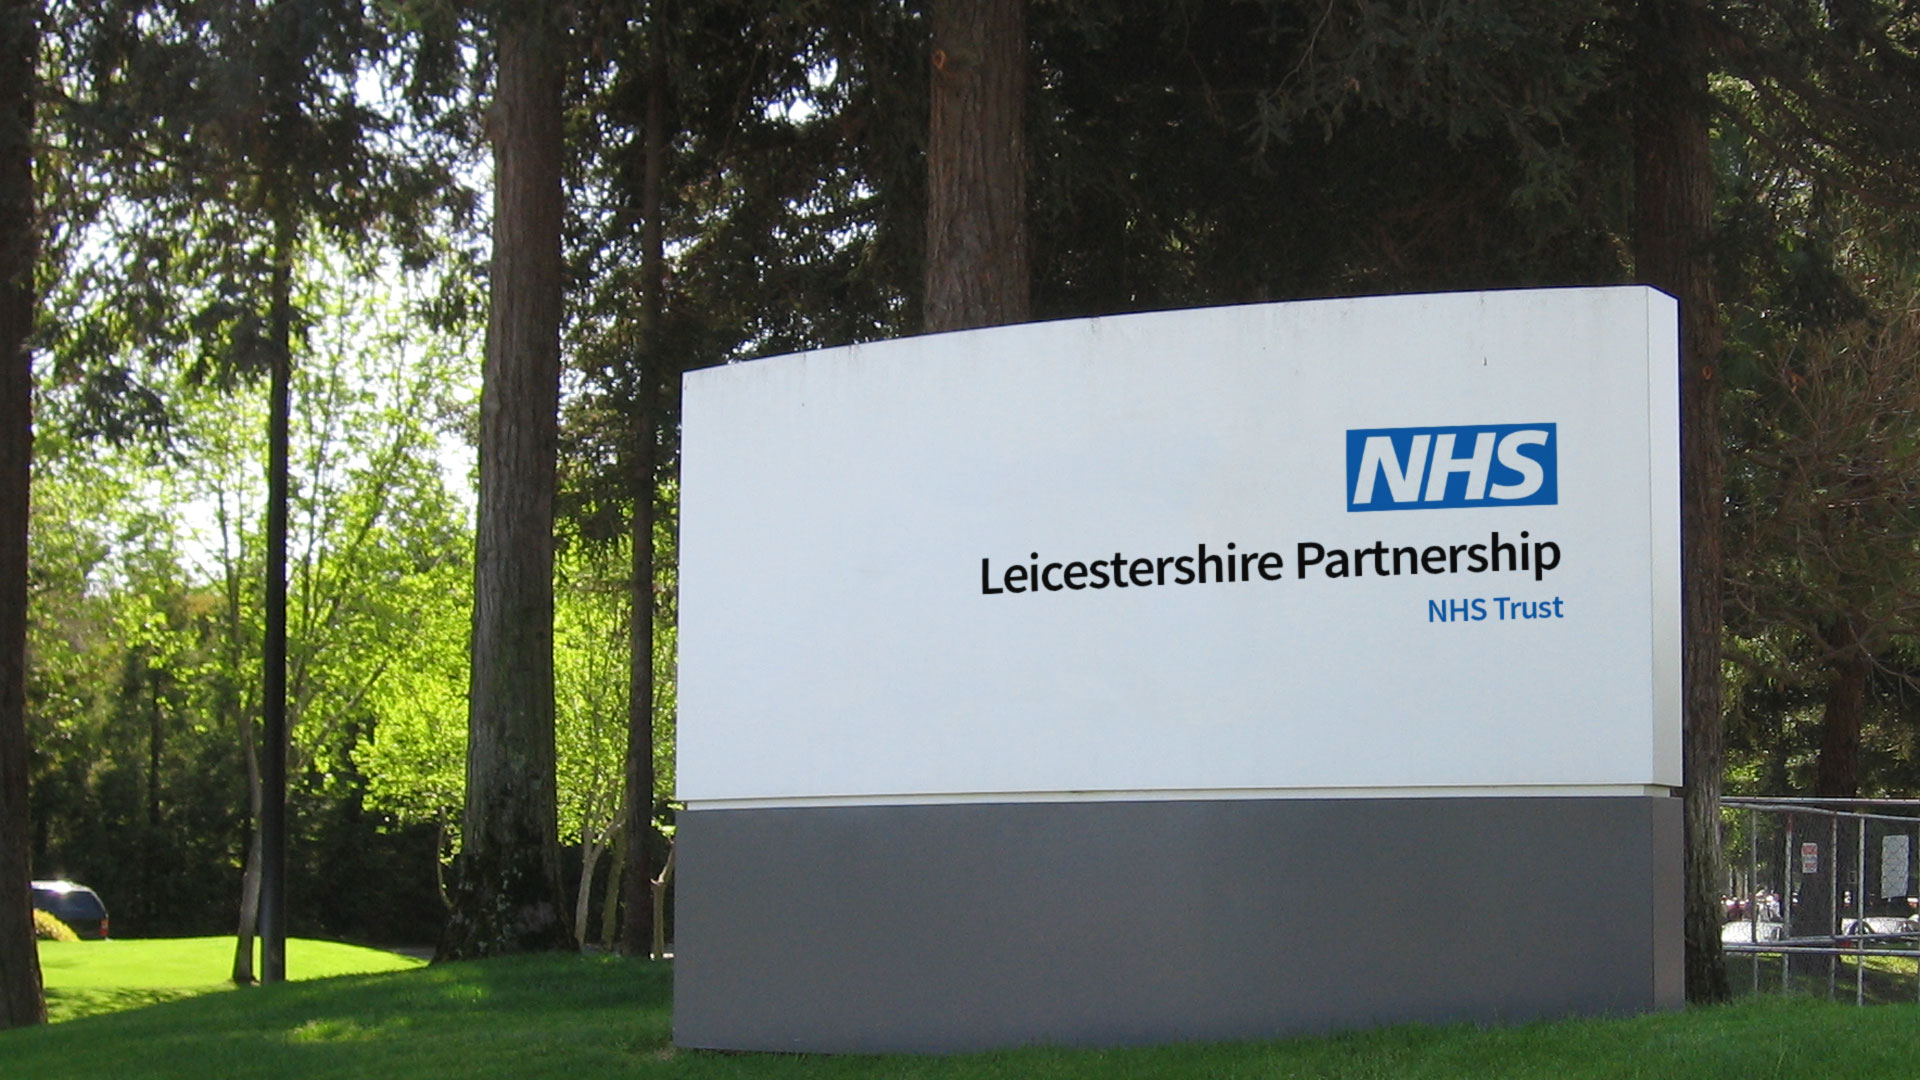 Leicestershire Partnership NHS Trust